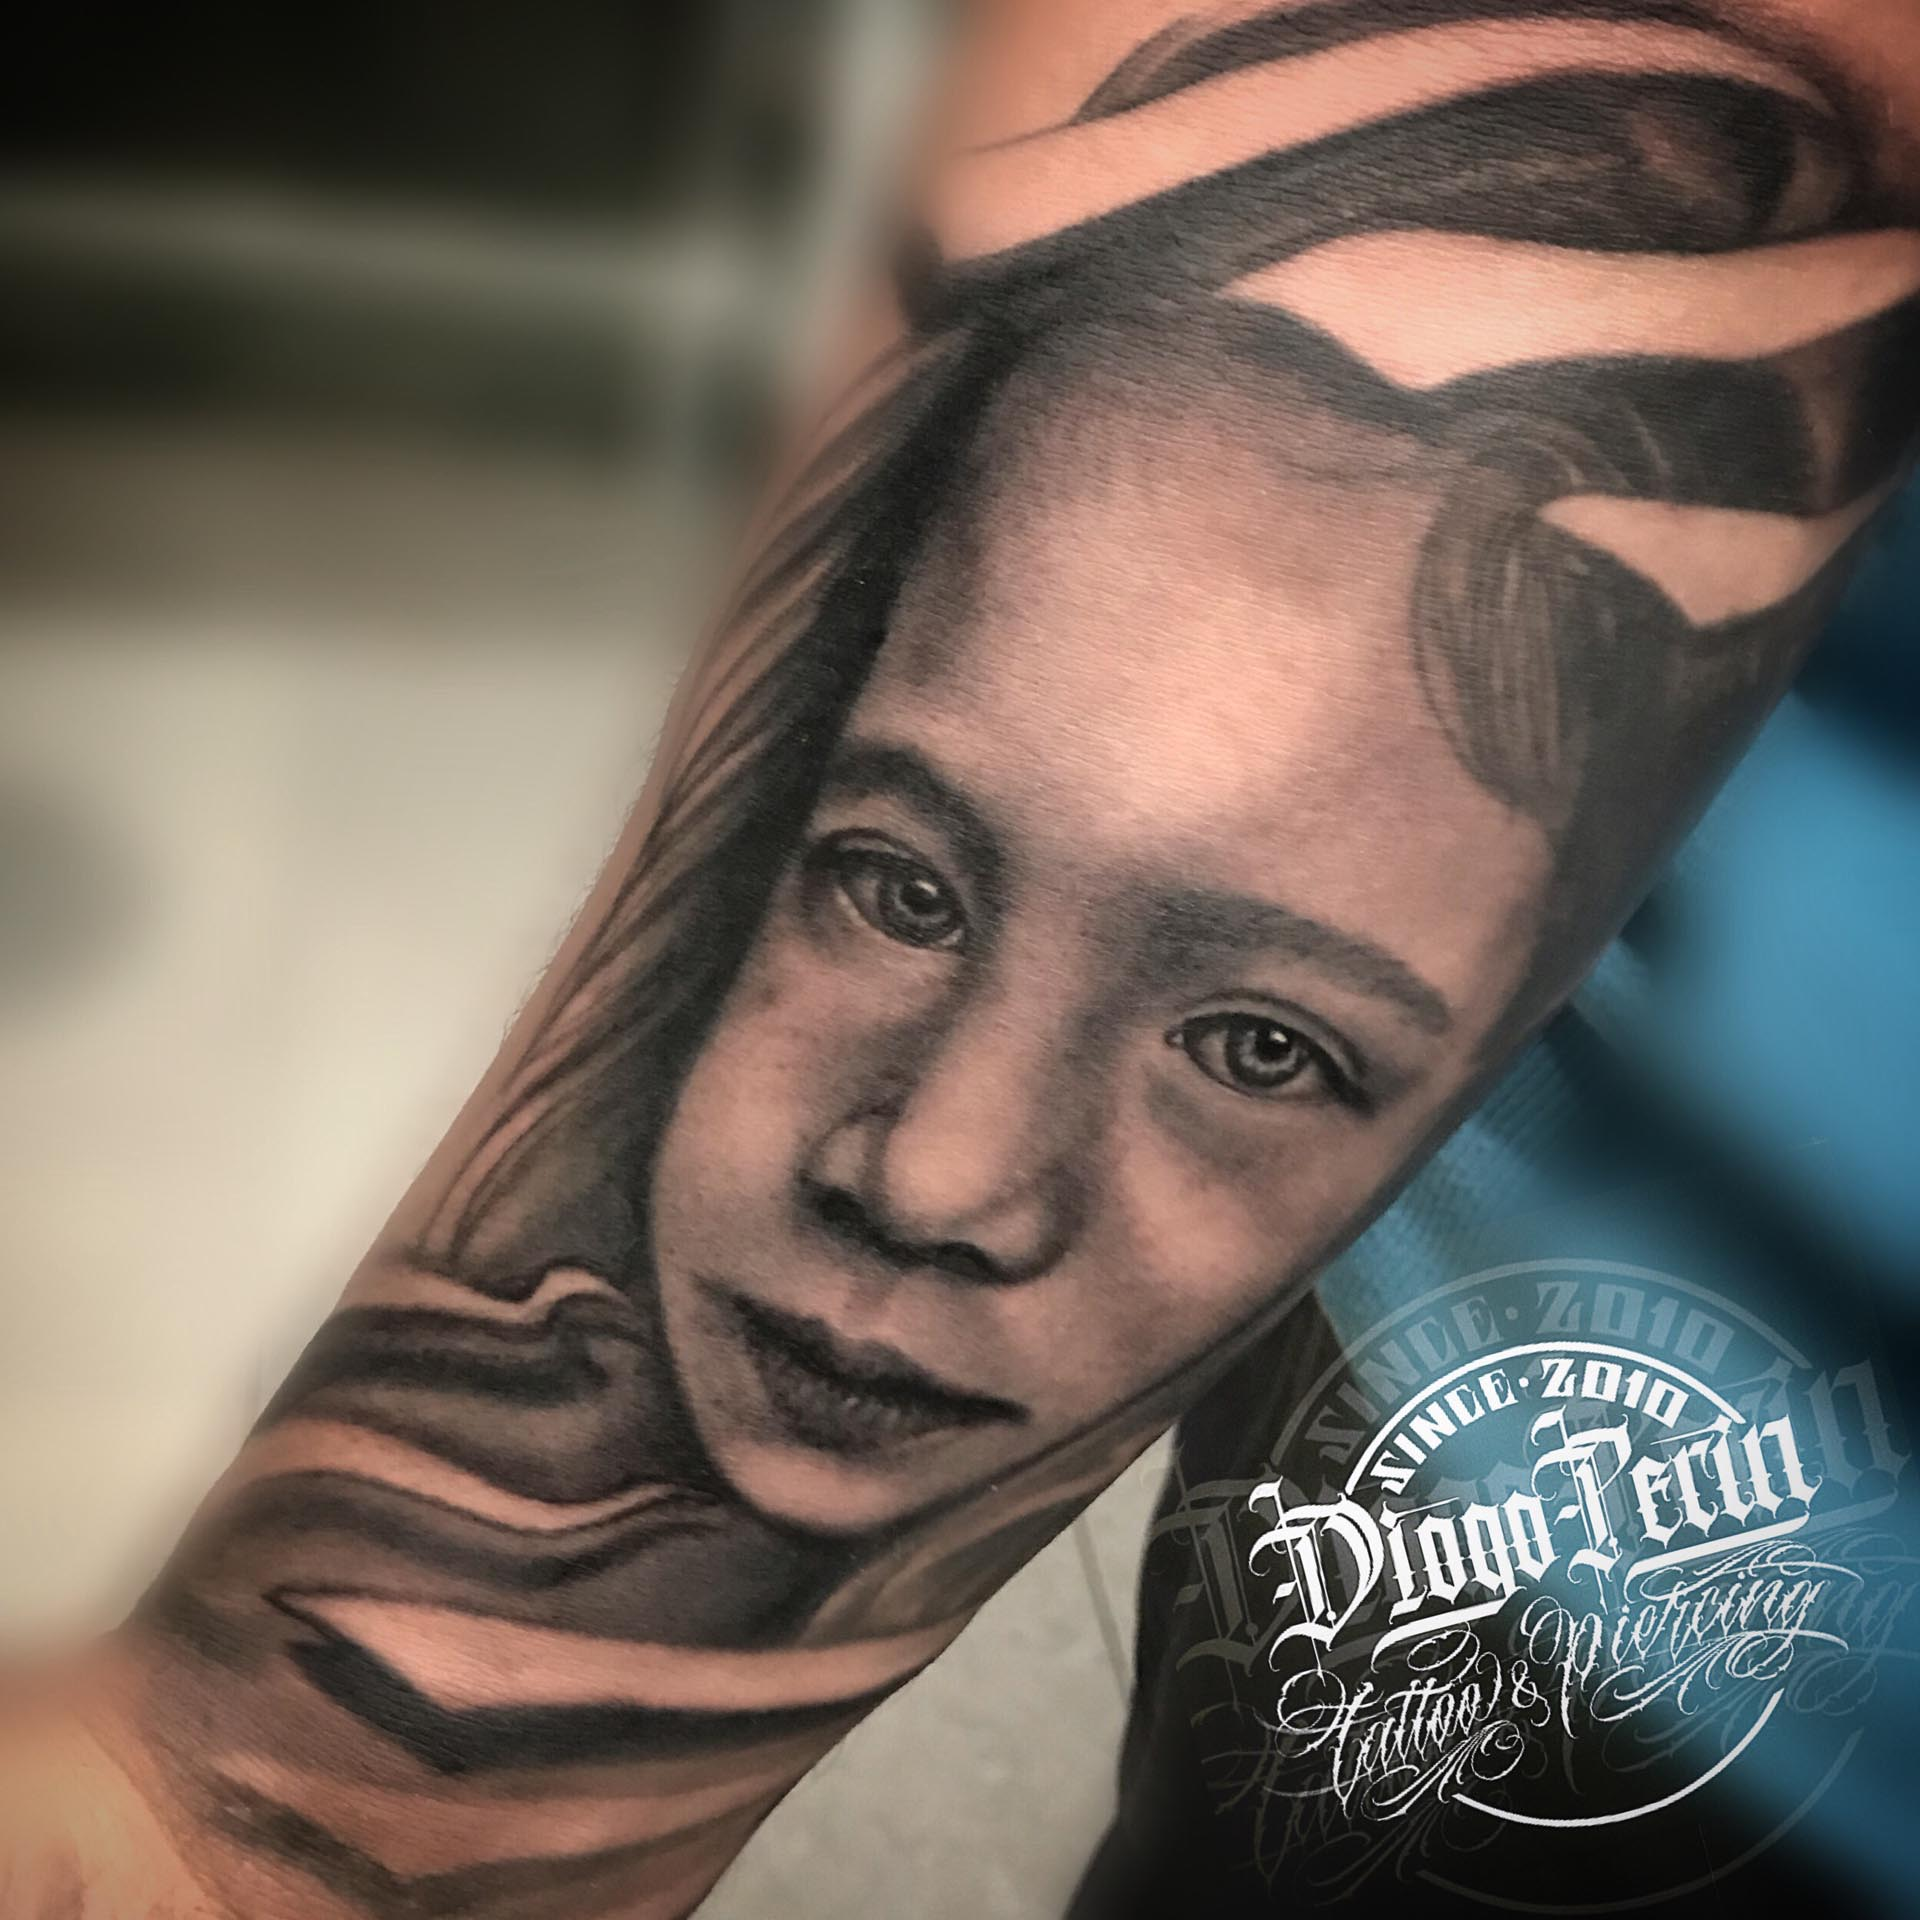 tatuaje retrato niña tattoo niña realistic tattoo realista alicante byn black and grey blanco y negro tatuaje alicante